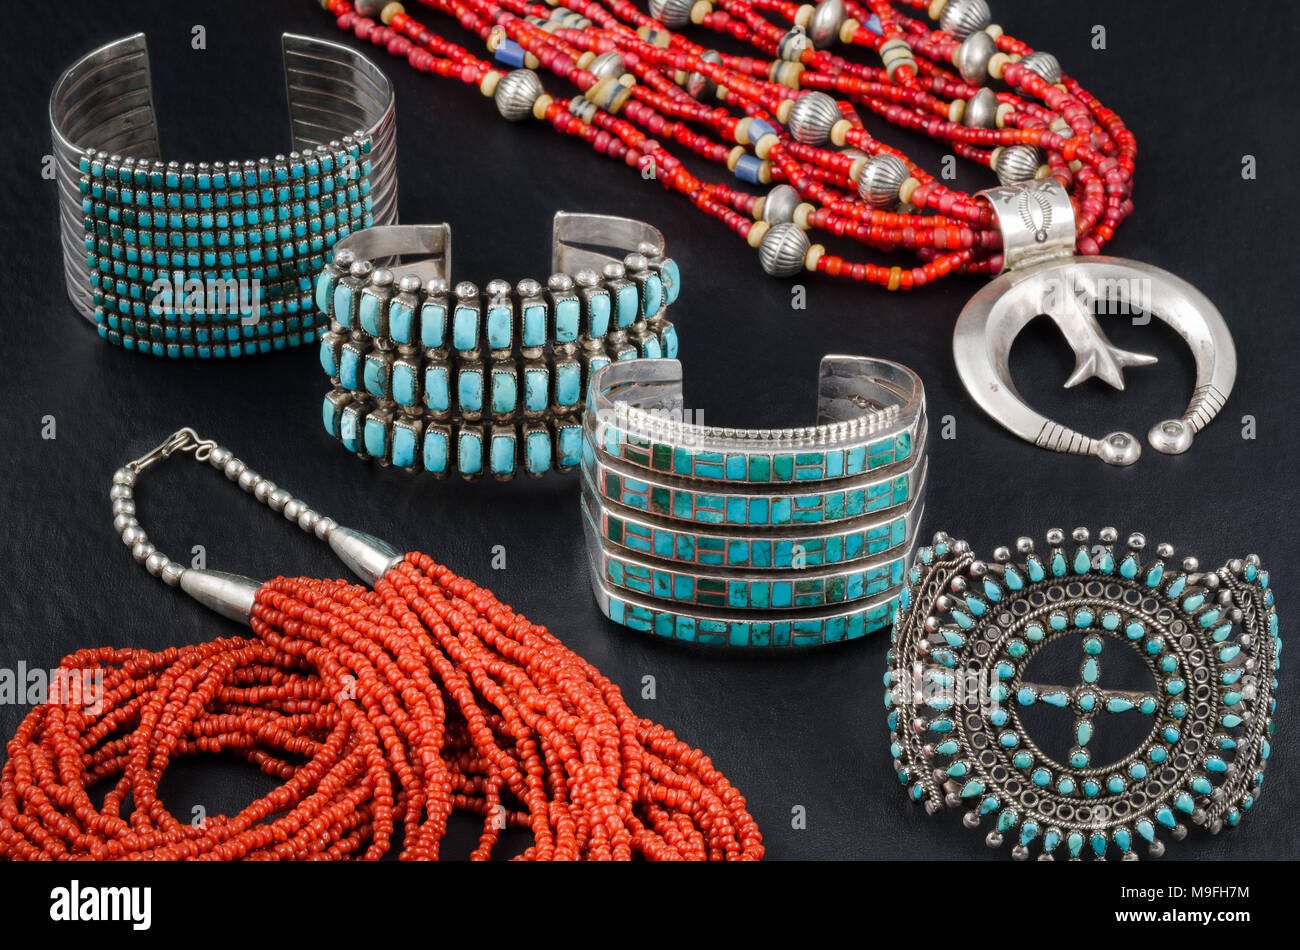 Collection of Native American Turquoise, Silver and Coral Bead Jewelry. Cuff Bracelets and Bead Necklaces. Stock Photo